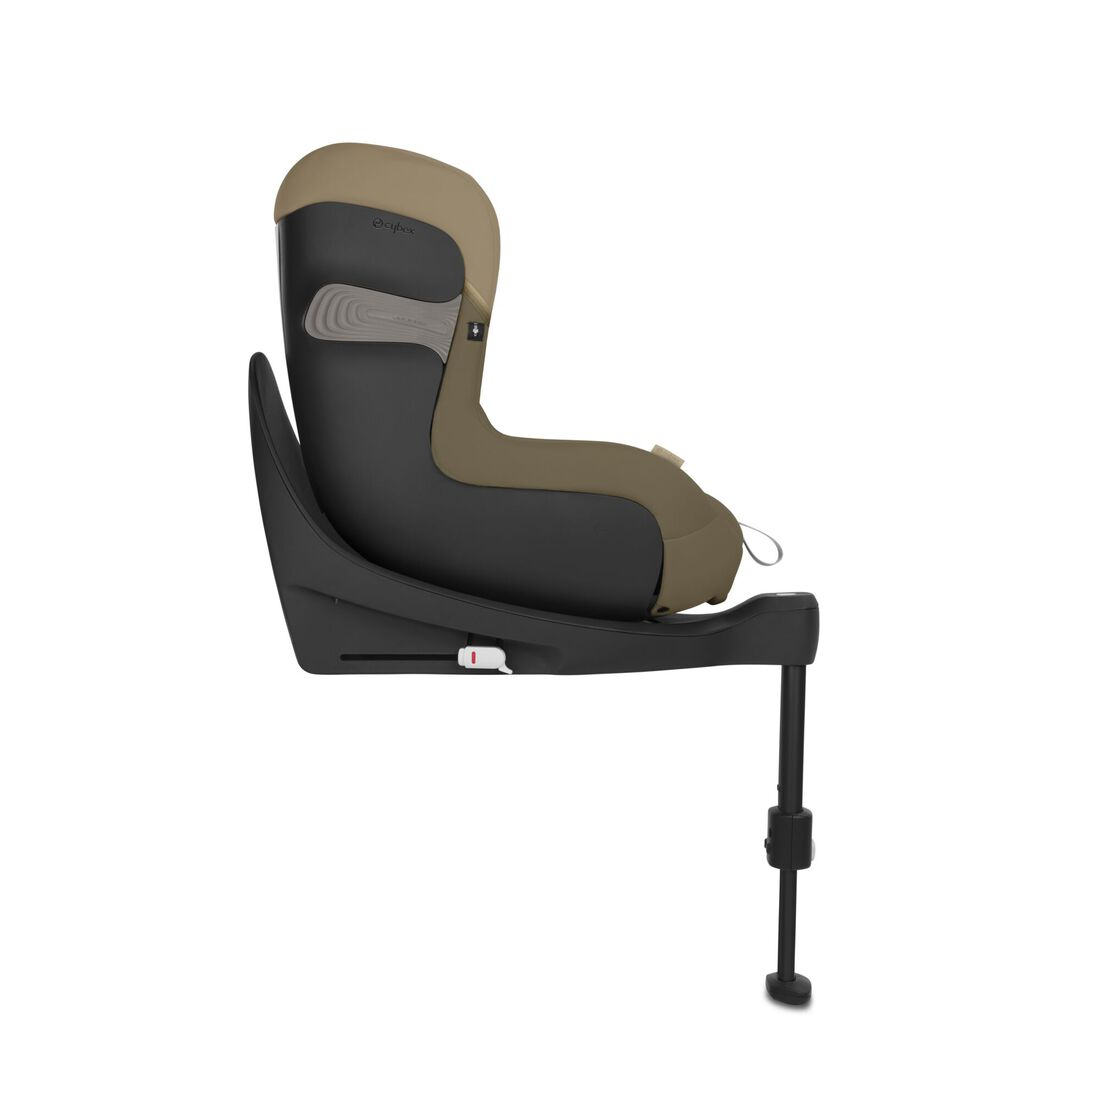 CYBEX Sirona S2 i-Size - Classic Beige in Classic Beige large image number 4